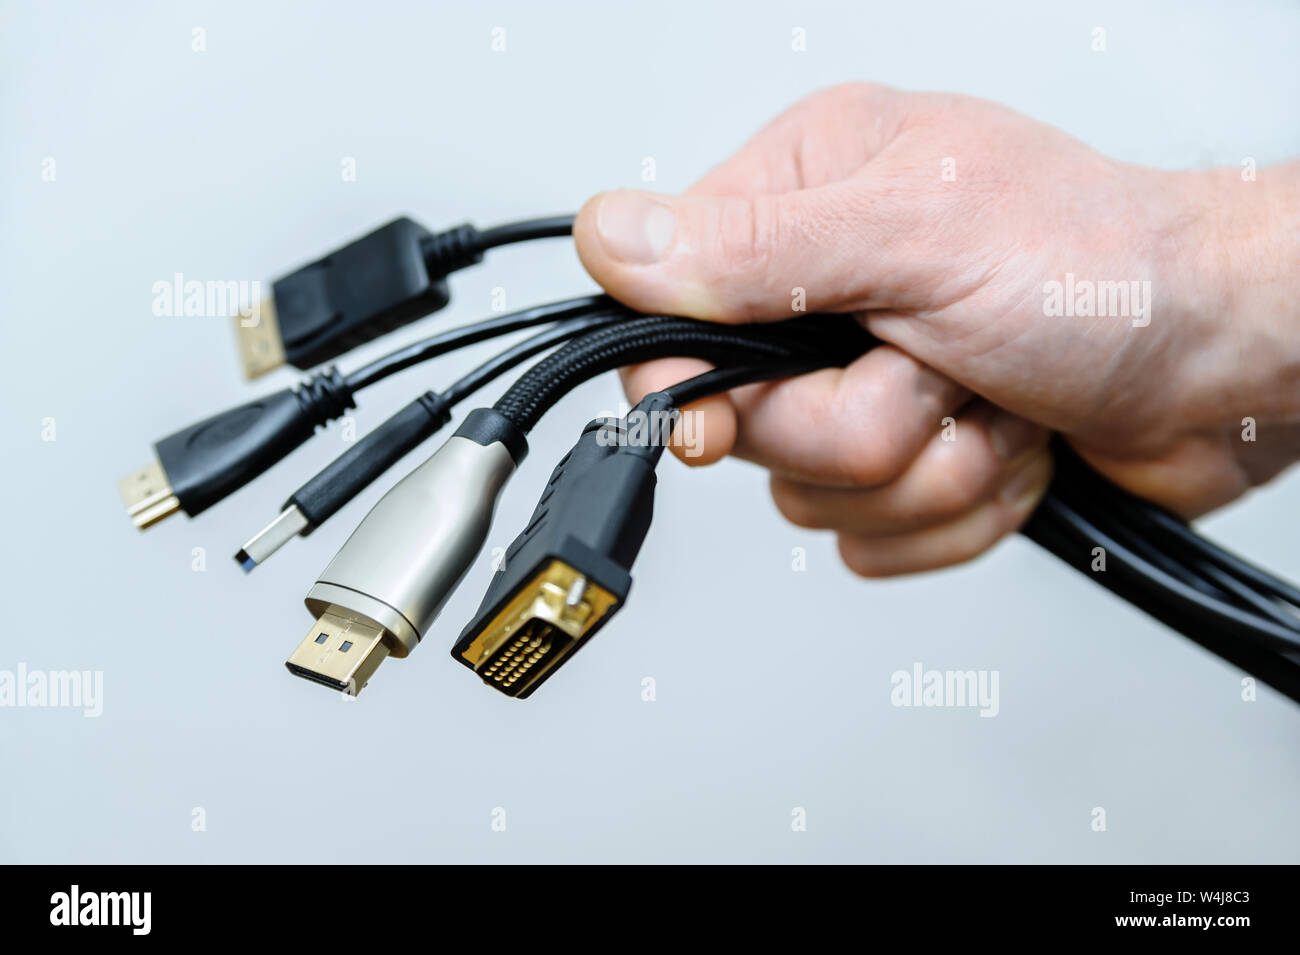 There are various cords and plugs in the hand of a man. Stock Photo